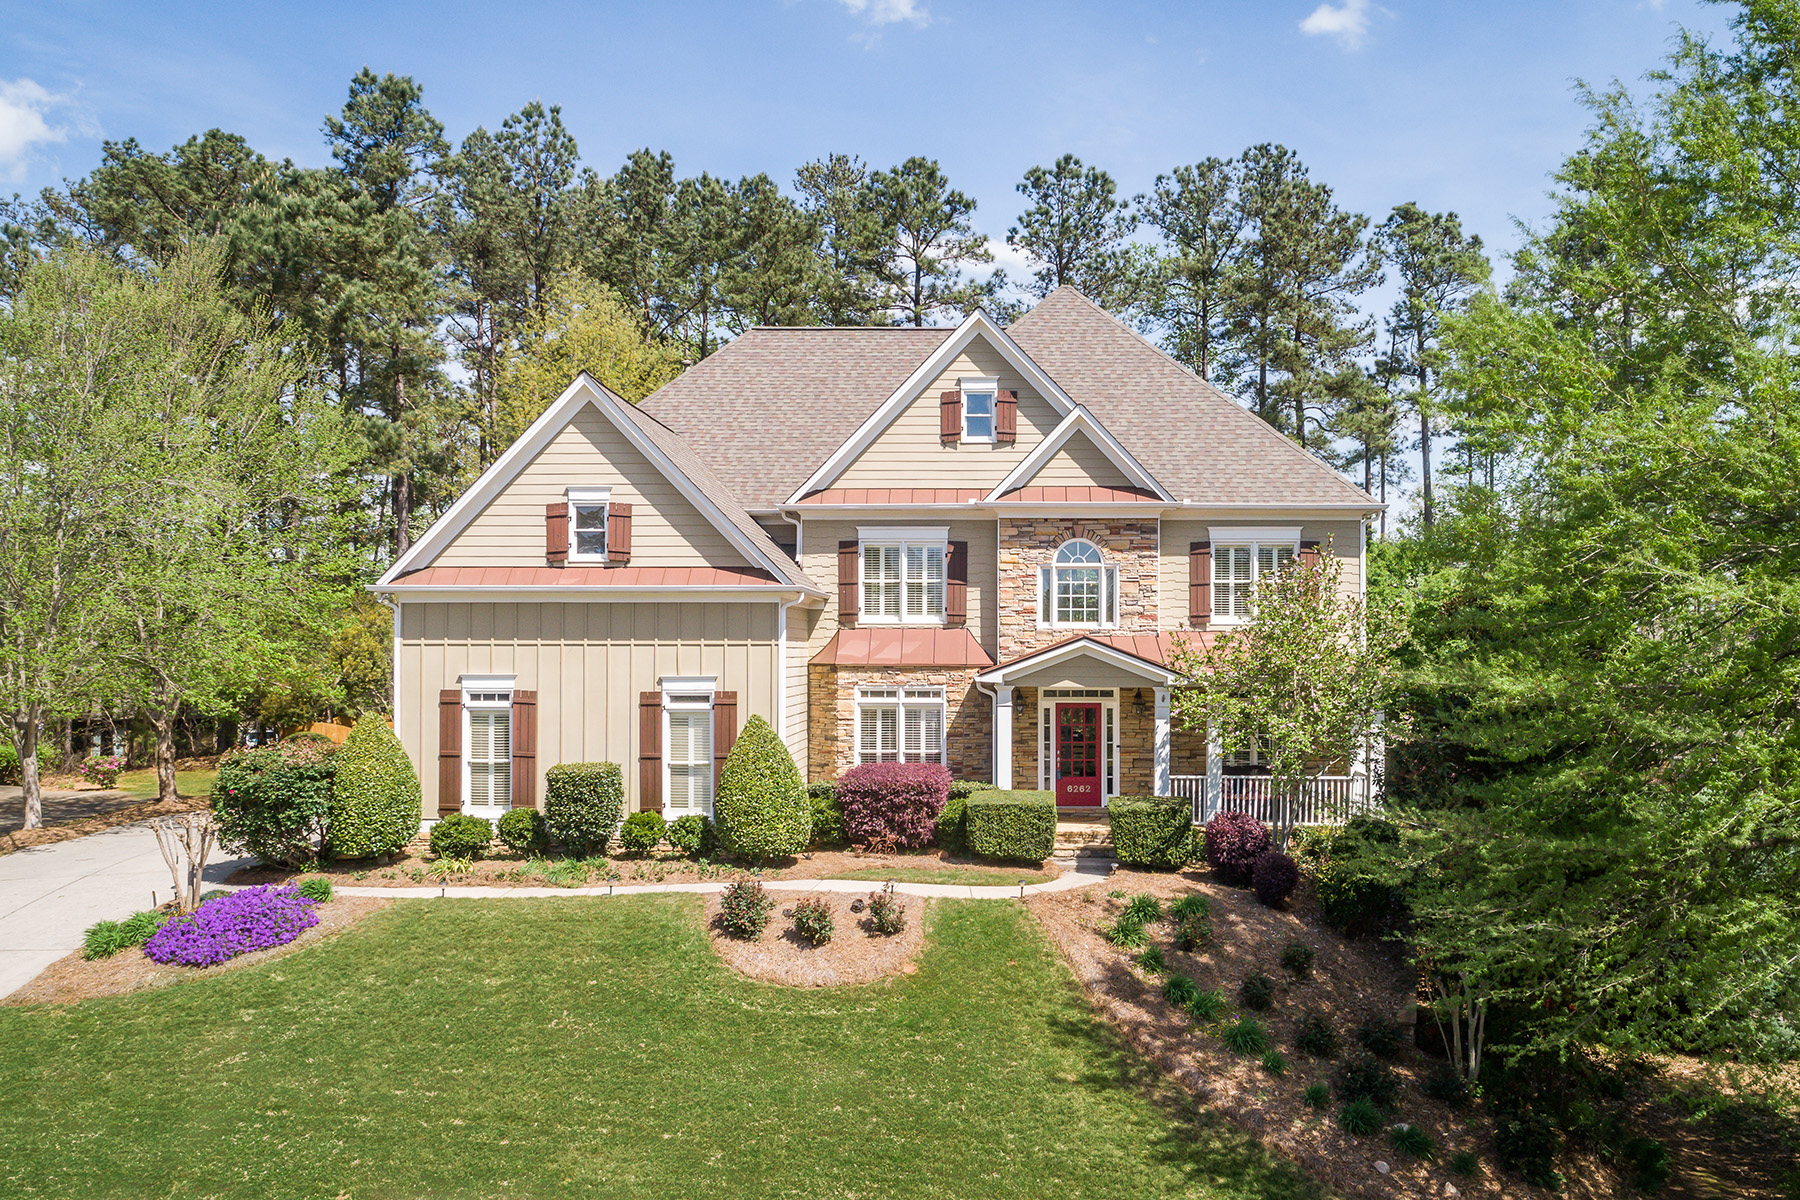 Single Family Homes for Active at Country Club Living 6262 Fernstone Trail Acworth, Georgia 30101 United States